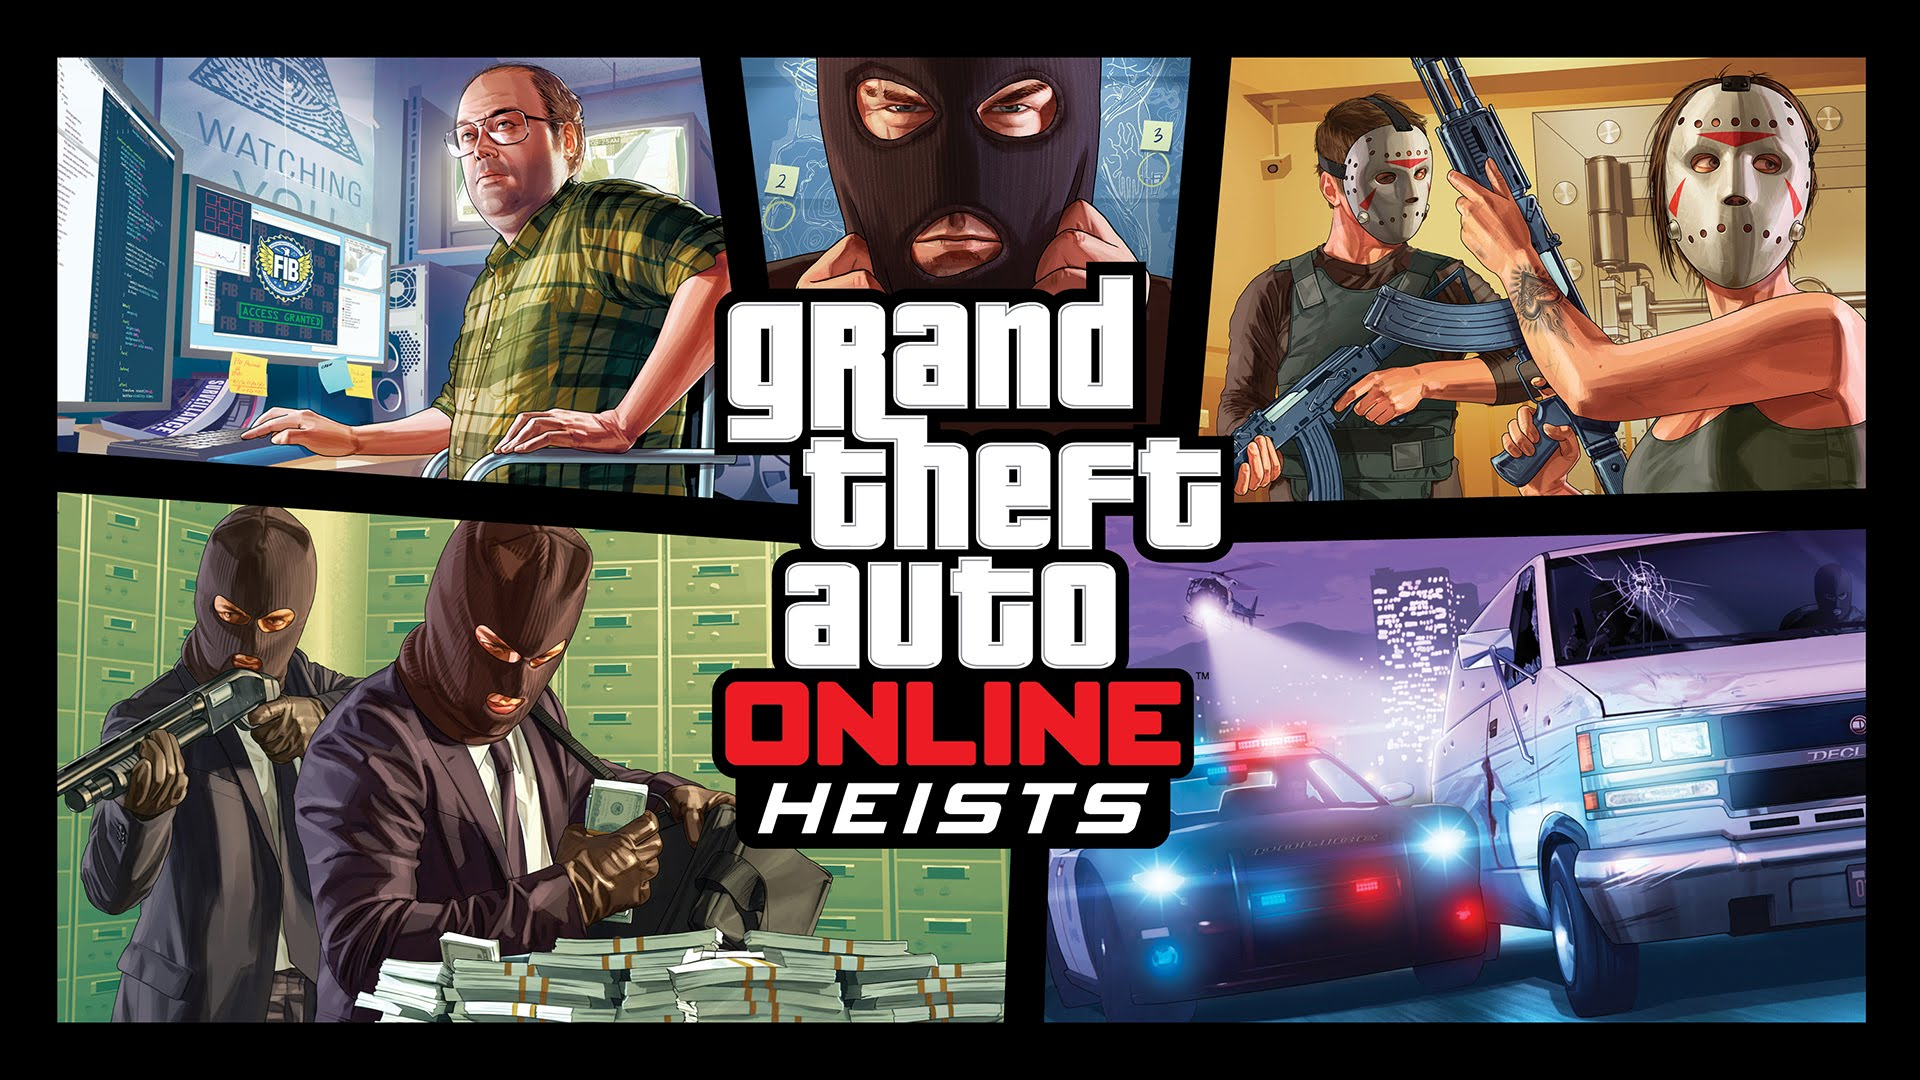 GTA Online Heists Revealed With Screenshots and New Trailer for PC and 1920x1080